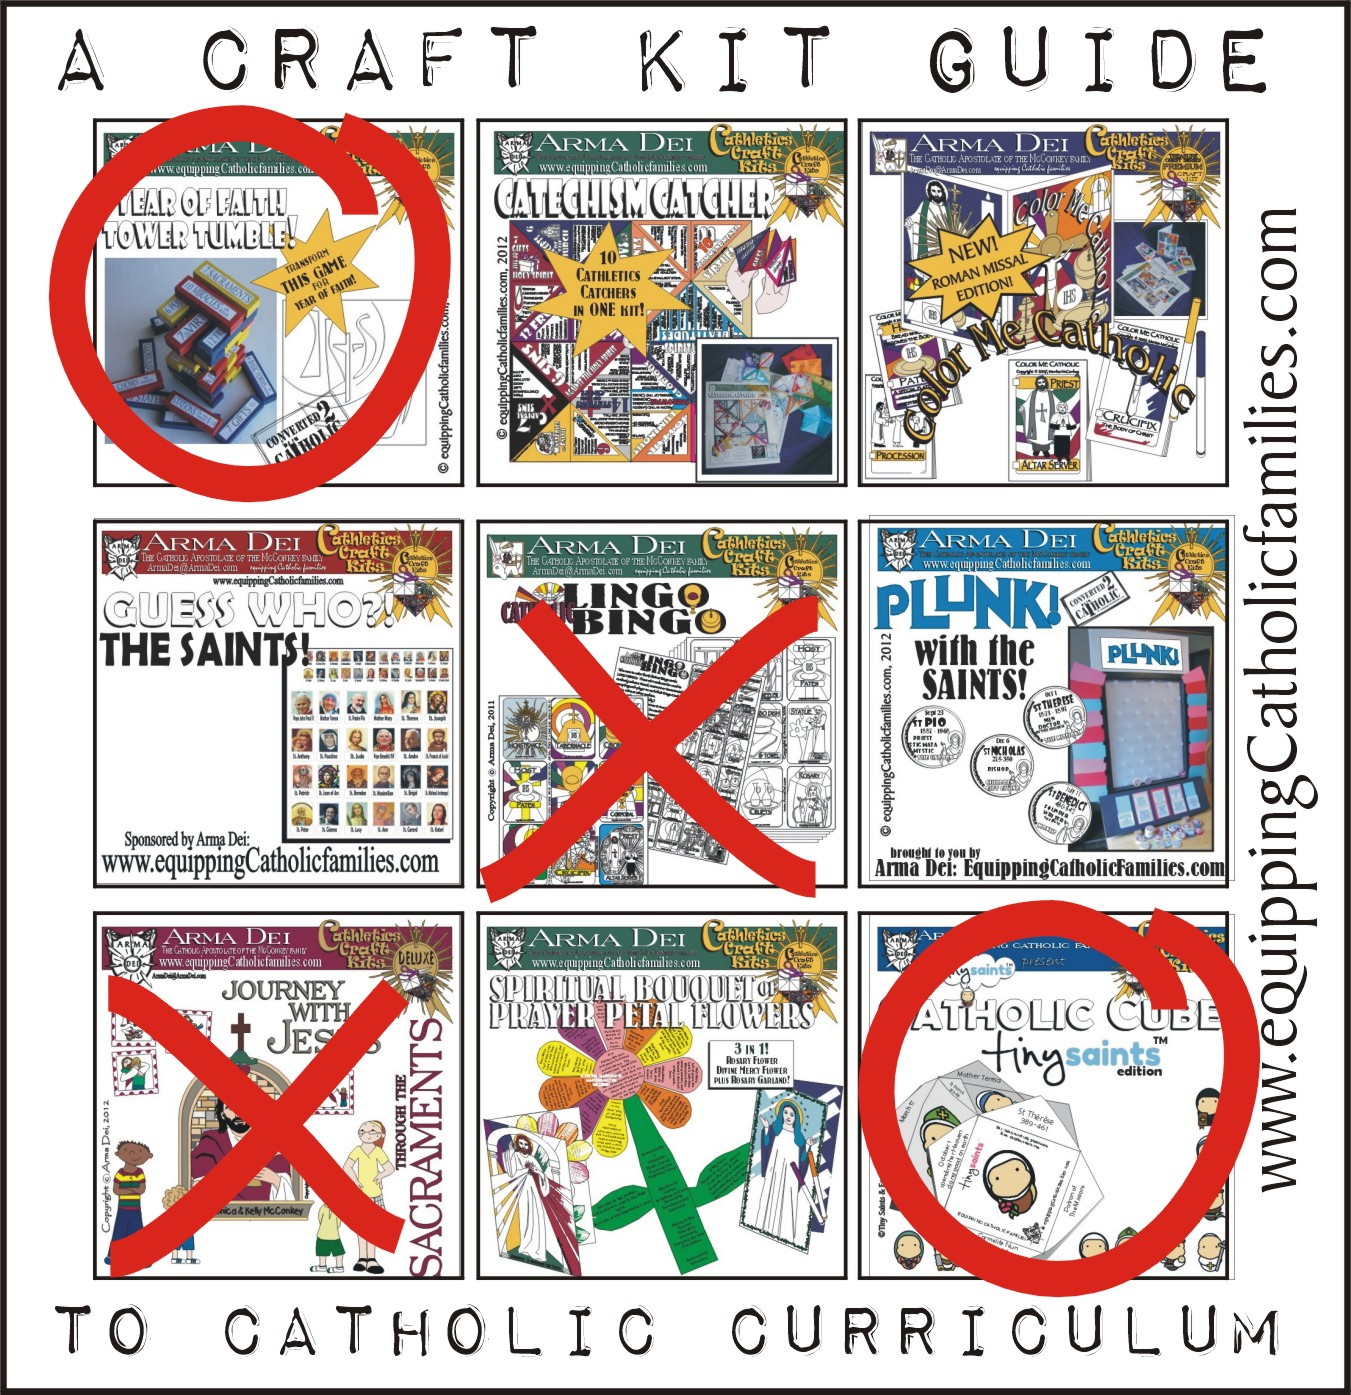 A Craft Kit Guide to Catholic Curriculum